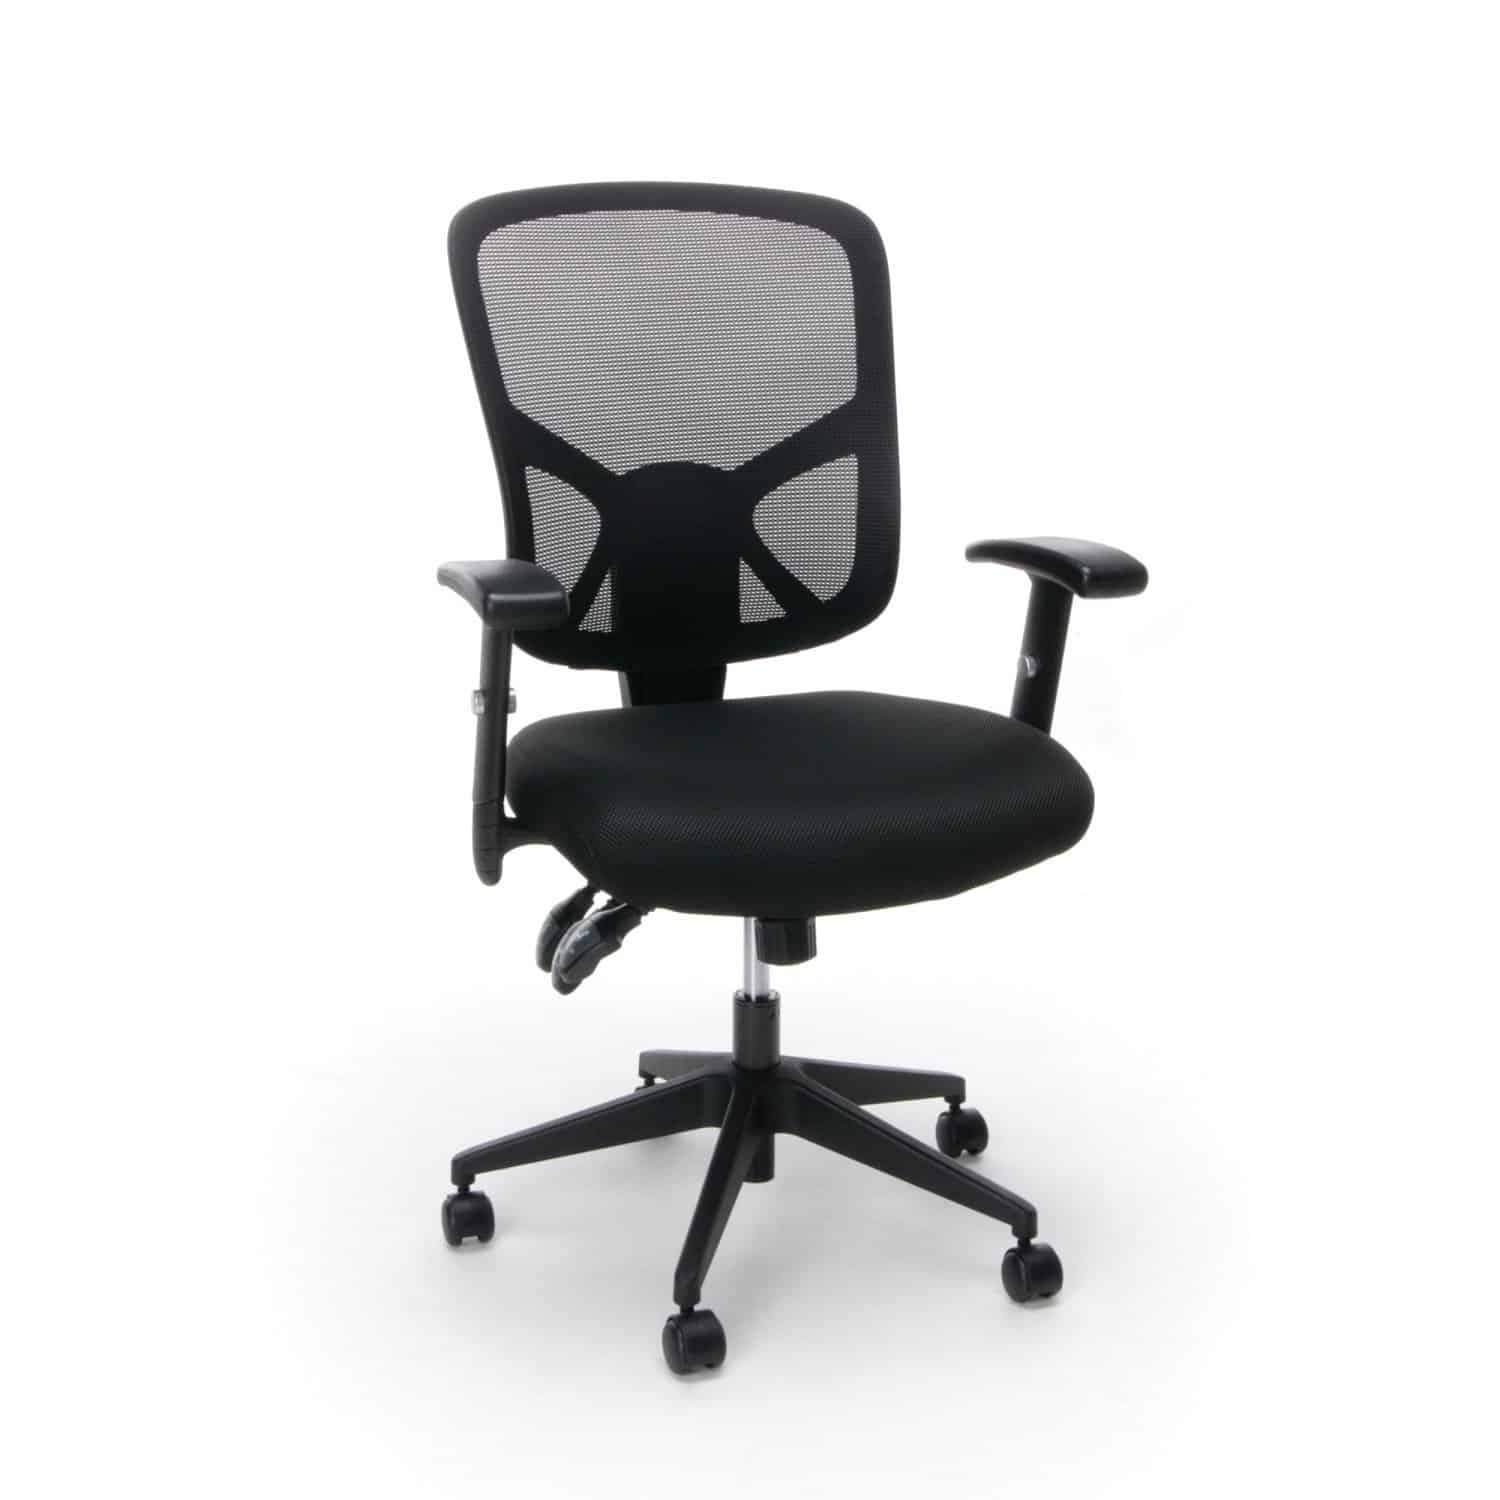 Best Chairs For Back Pain What 39s The Best Ergonomic Chair For Lower Back Pain